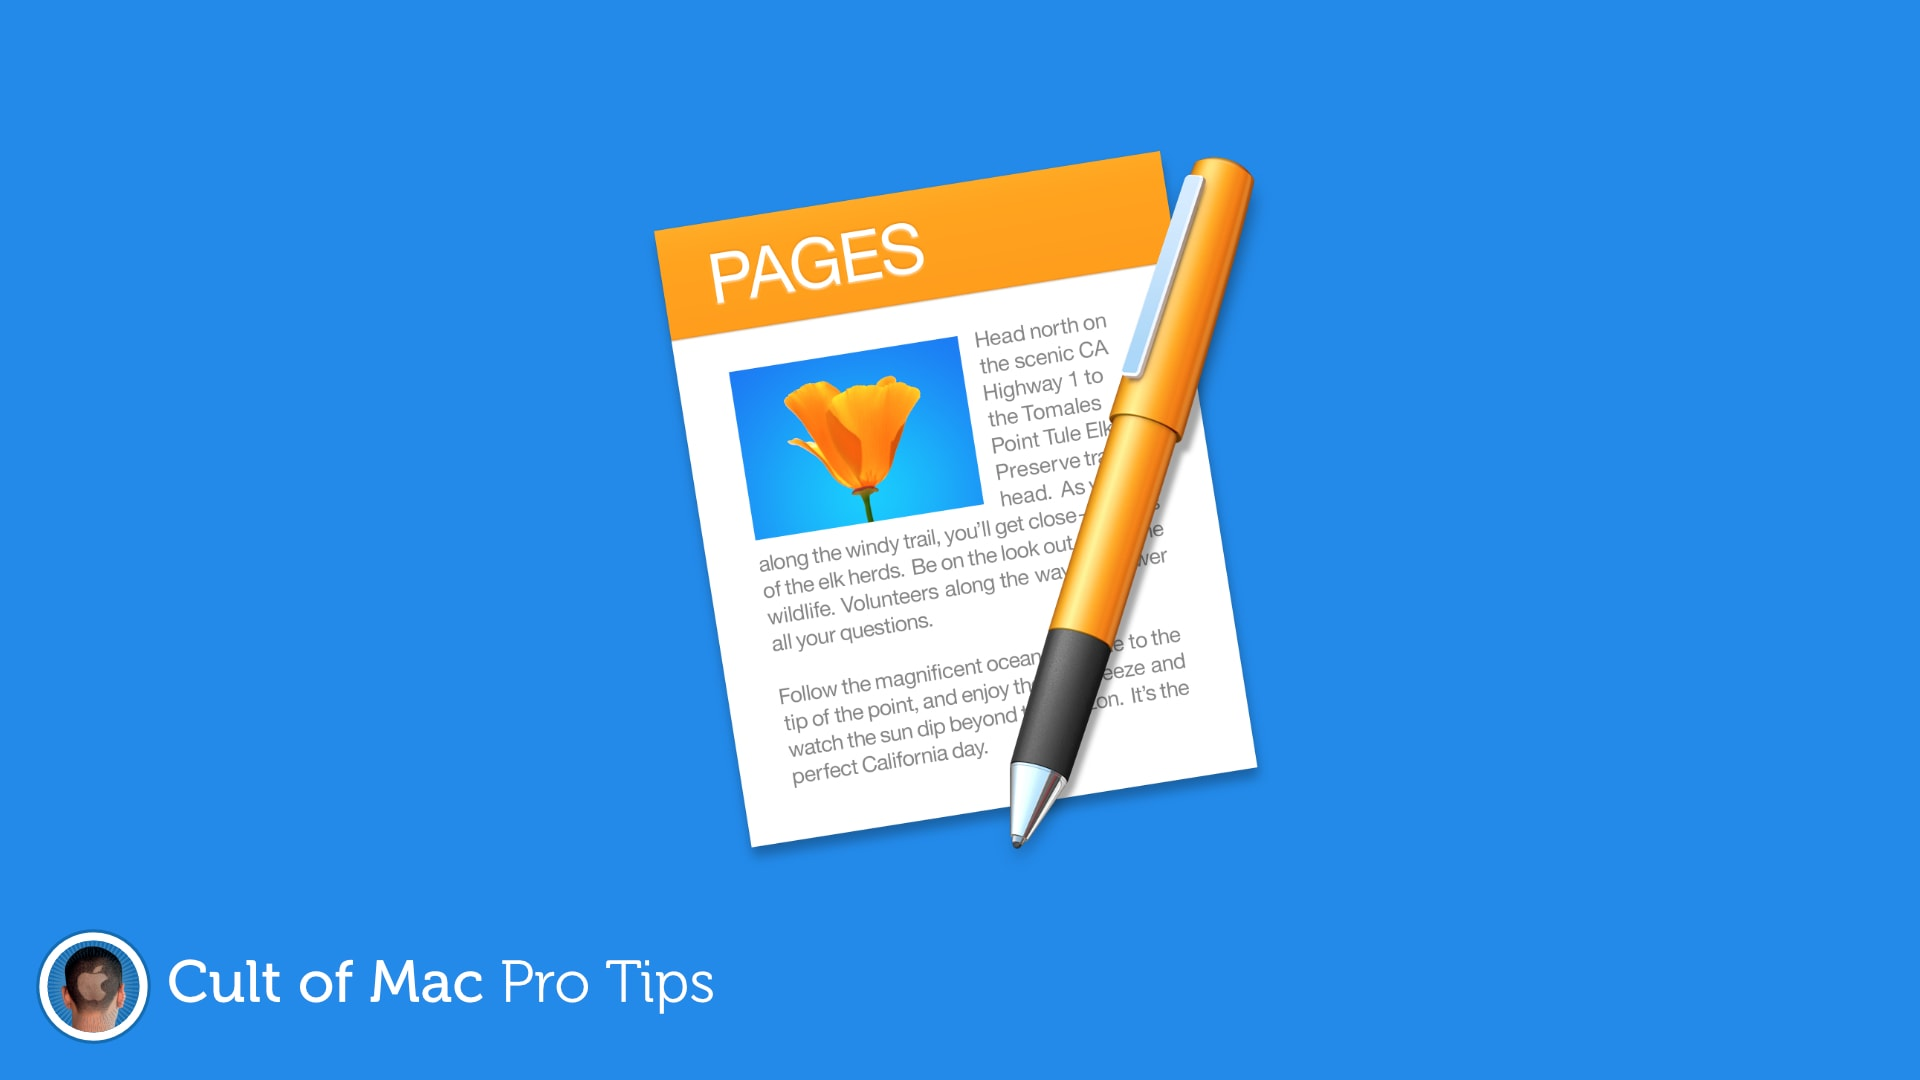 Track changes so you don't miss edits in shared Pages documents [Pro tip]